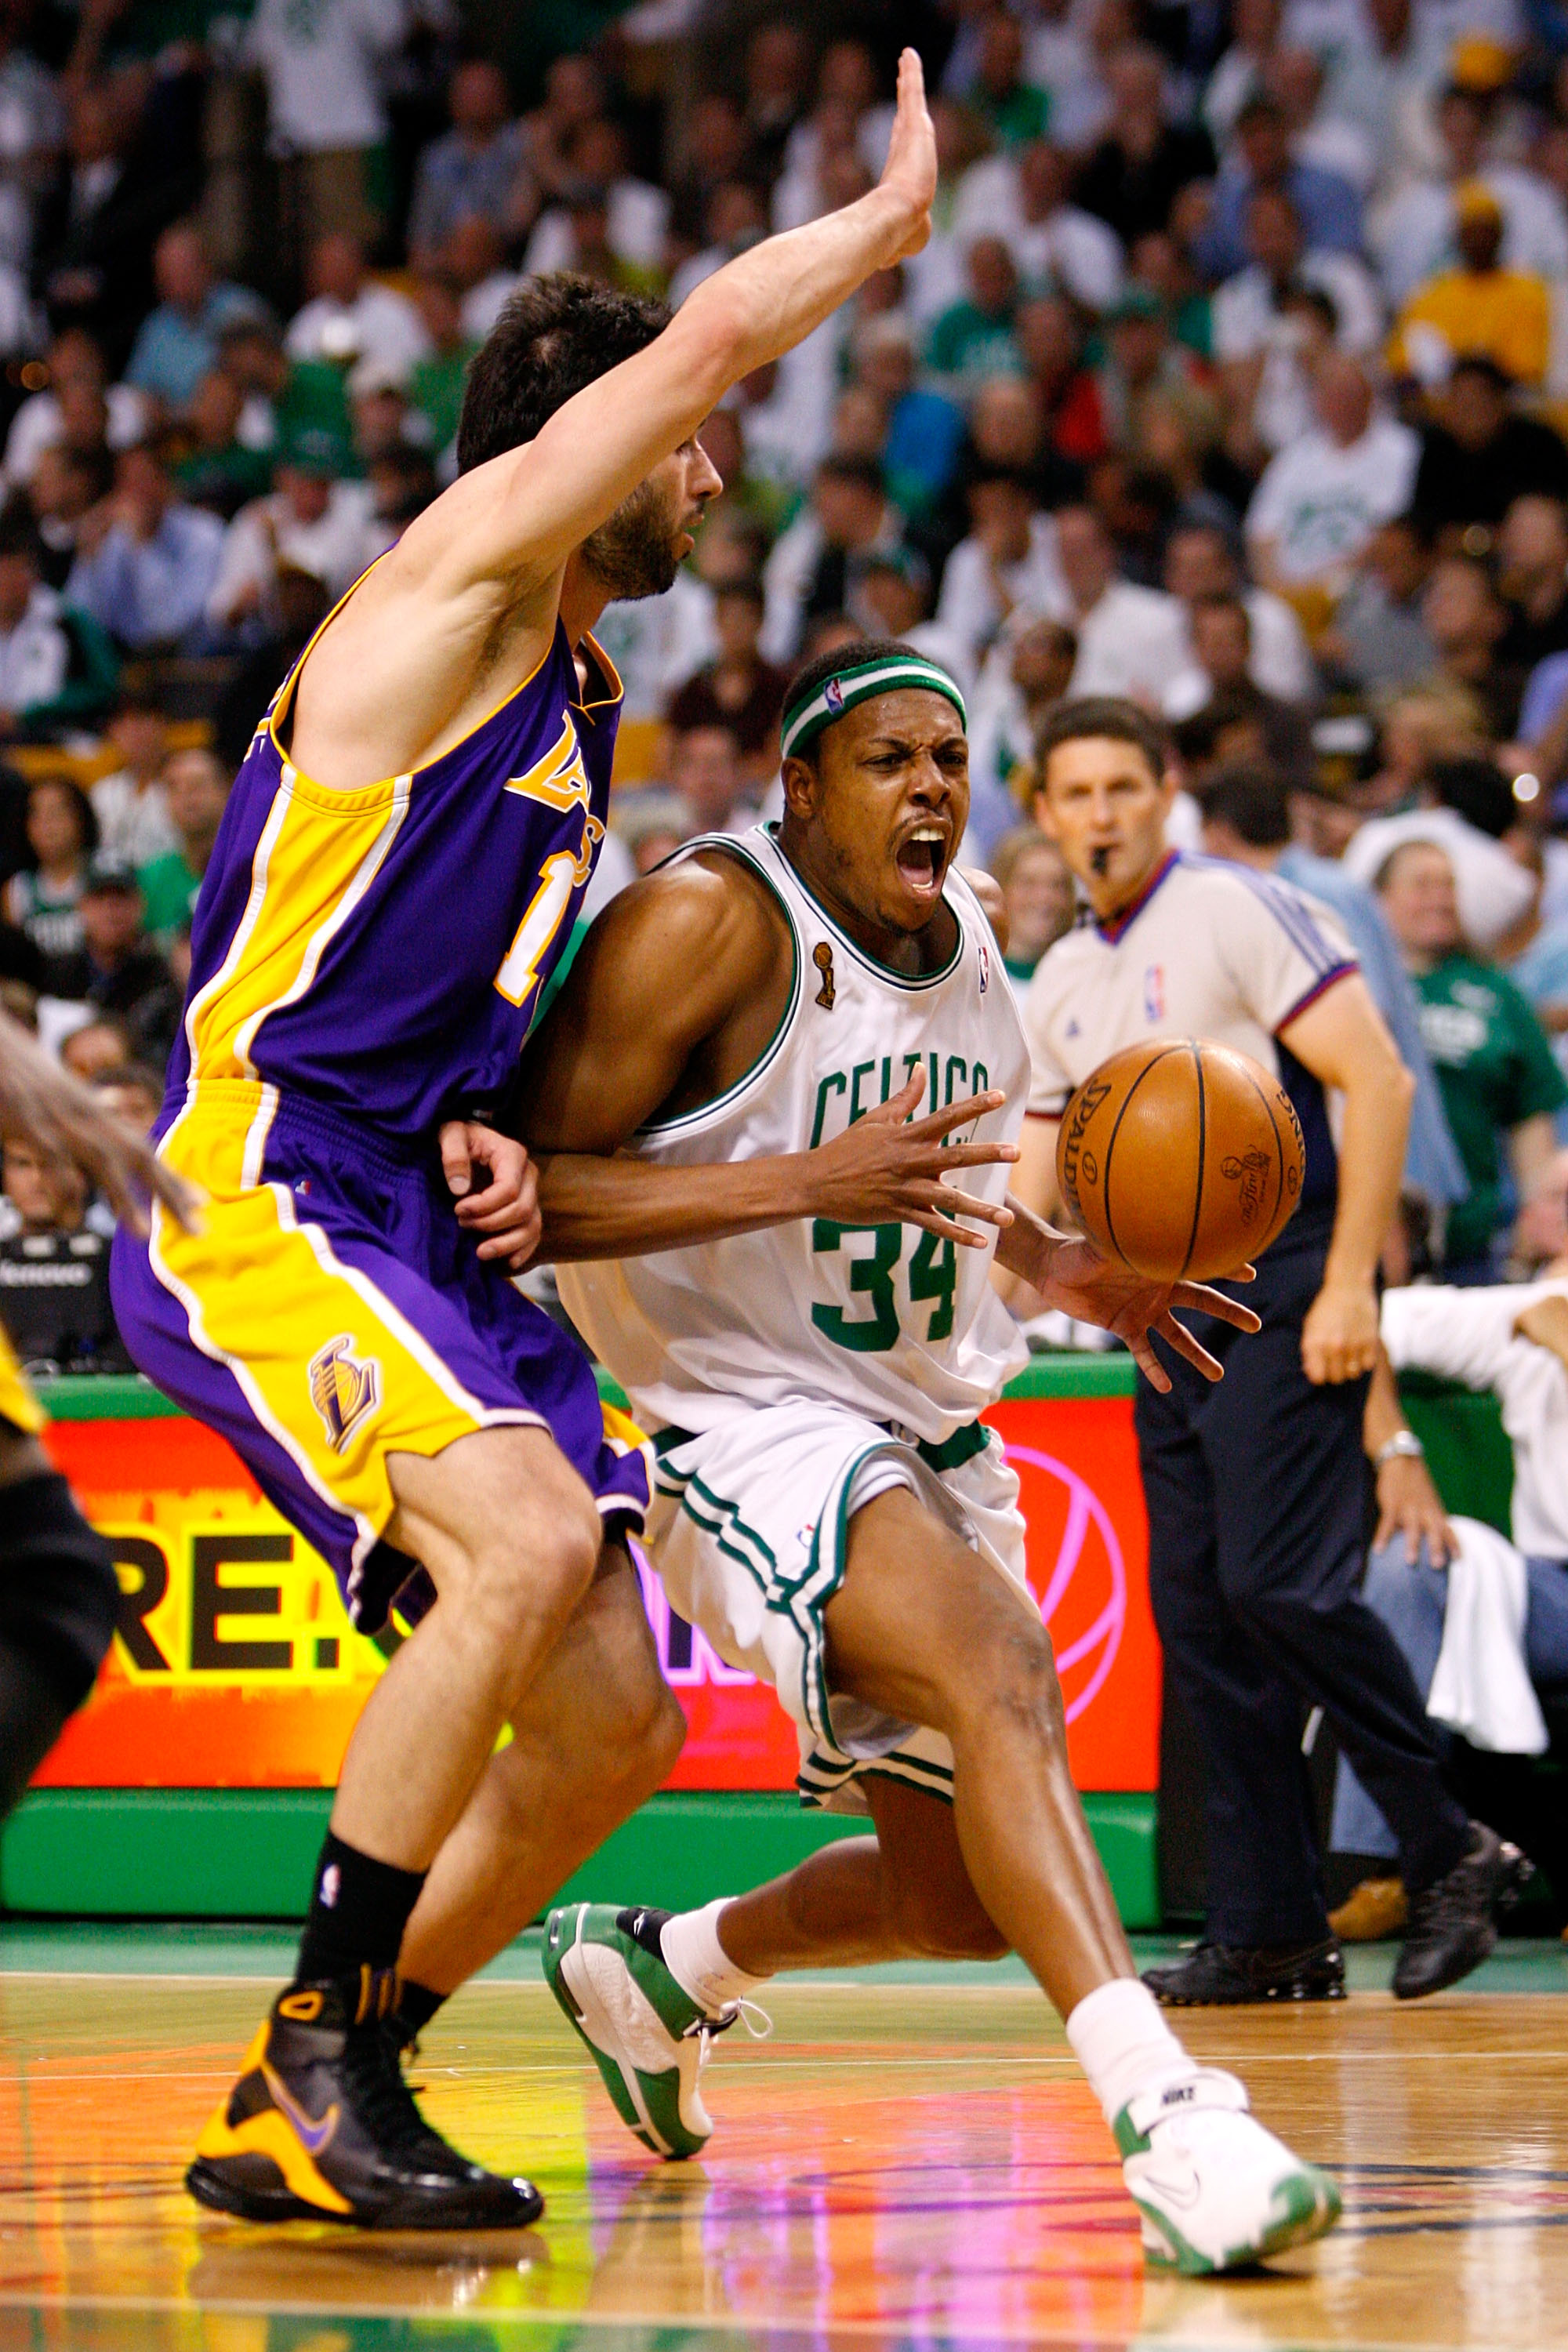 BOSTON - JUNE 05:  Paul Pierce #34 of the Boston Celtics drives to the basket against Vladimir Radmanovic #10 of the Los Angeles Lakers in Game One of the 2008 NBA Finals on June 5, 2008 at TD Banknorth Garden in Boston, Massachusetts. NOTE TO USER: User